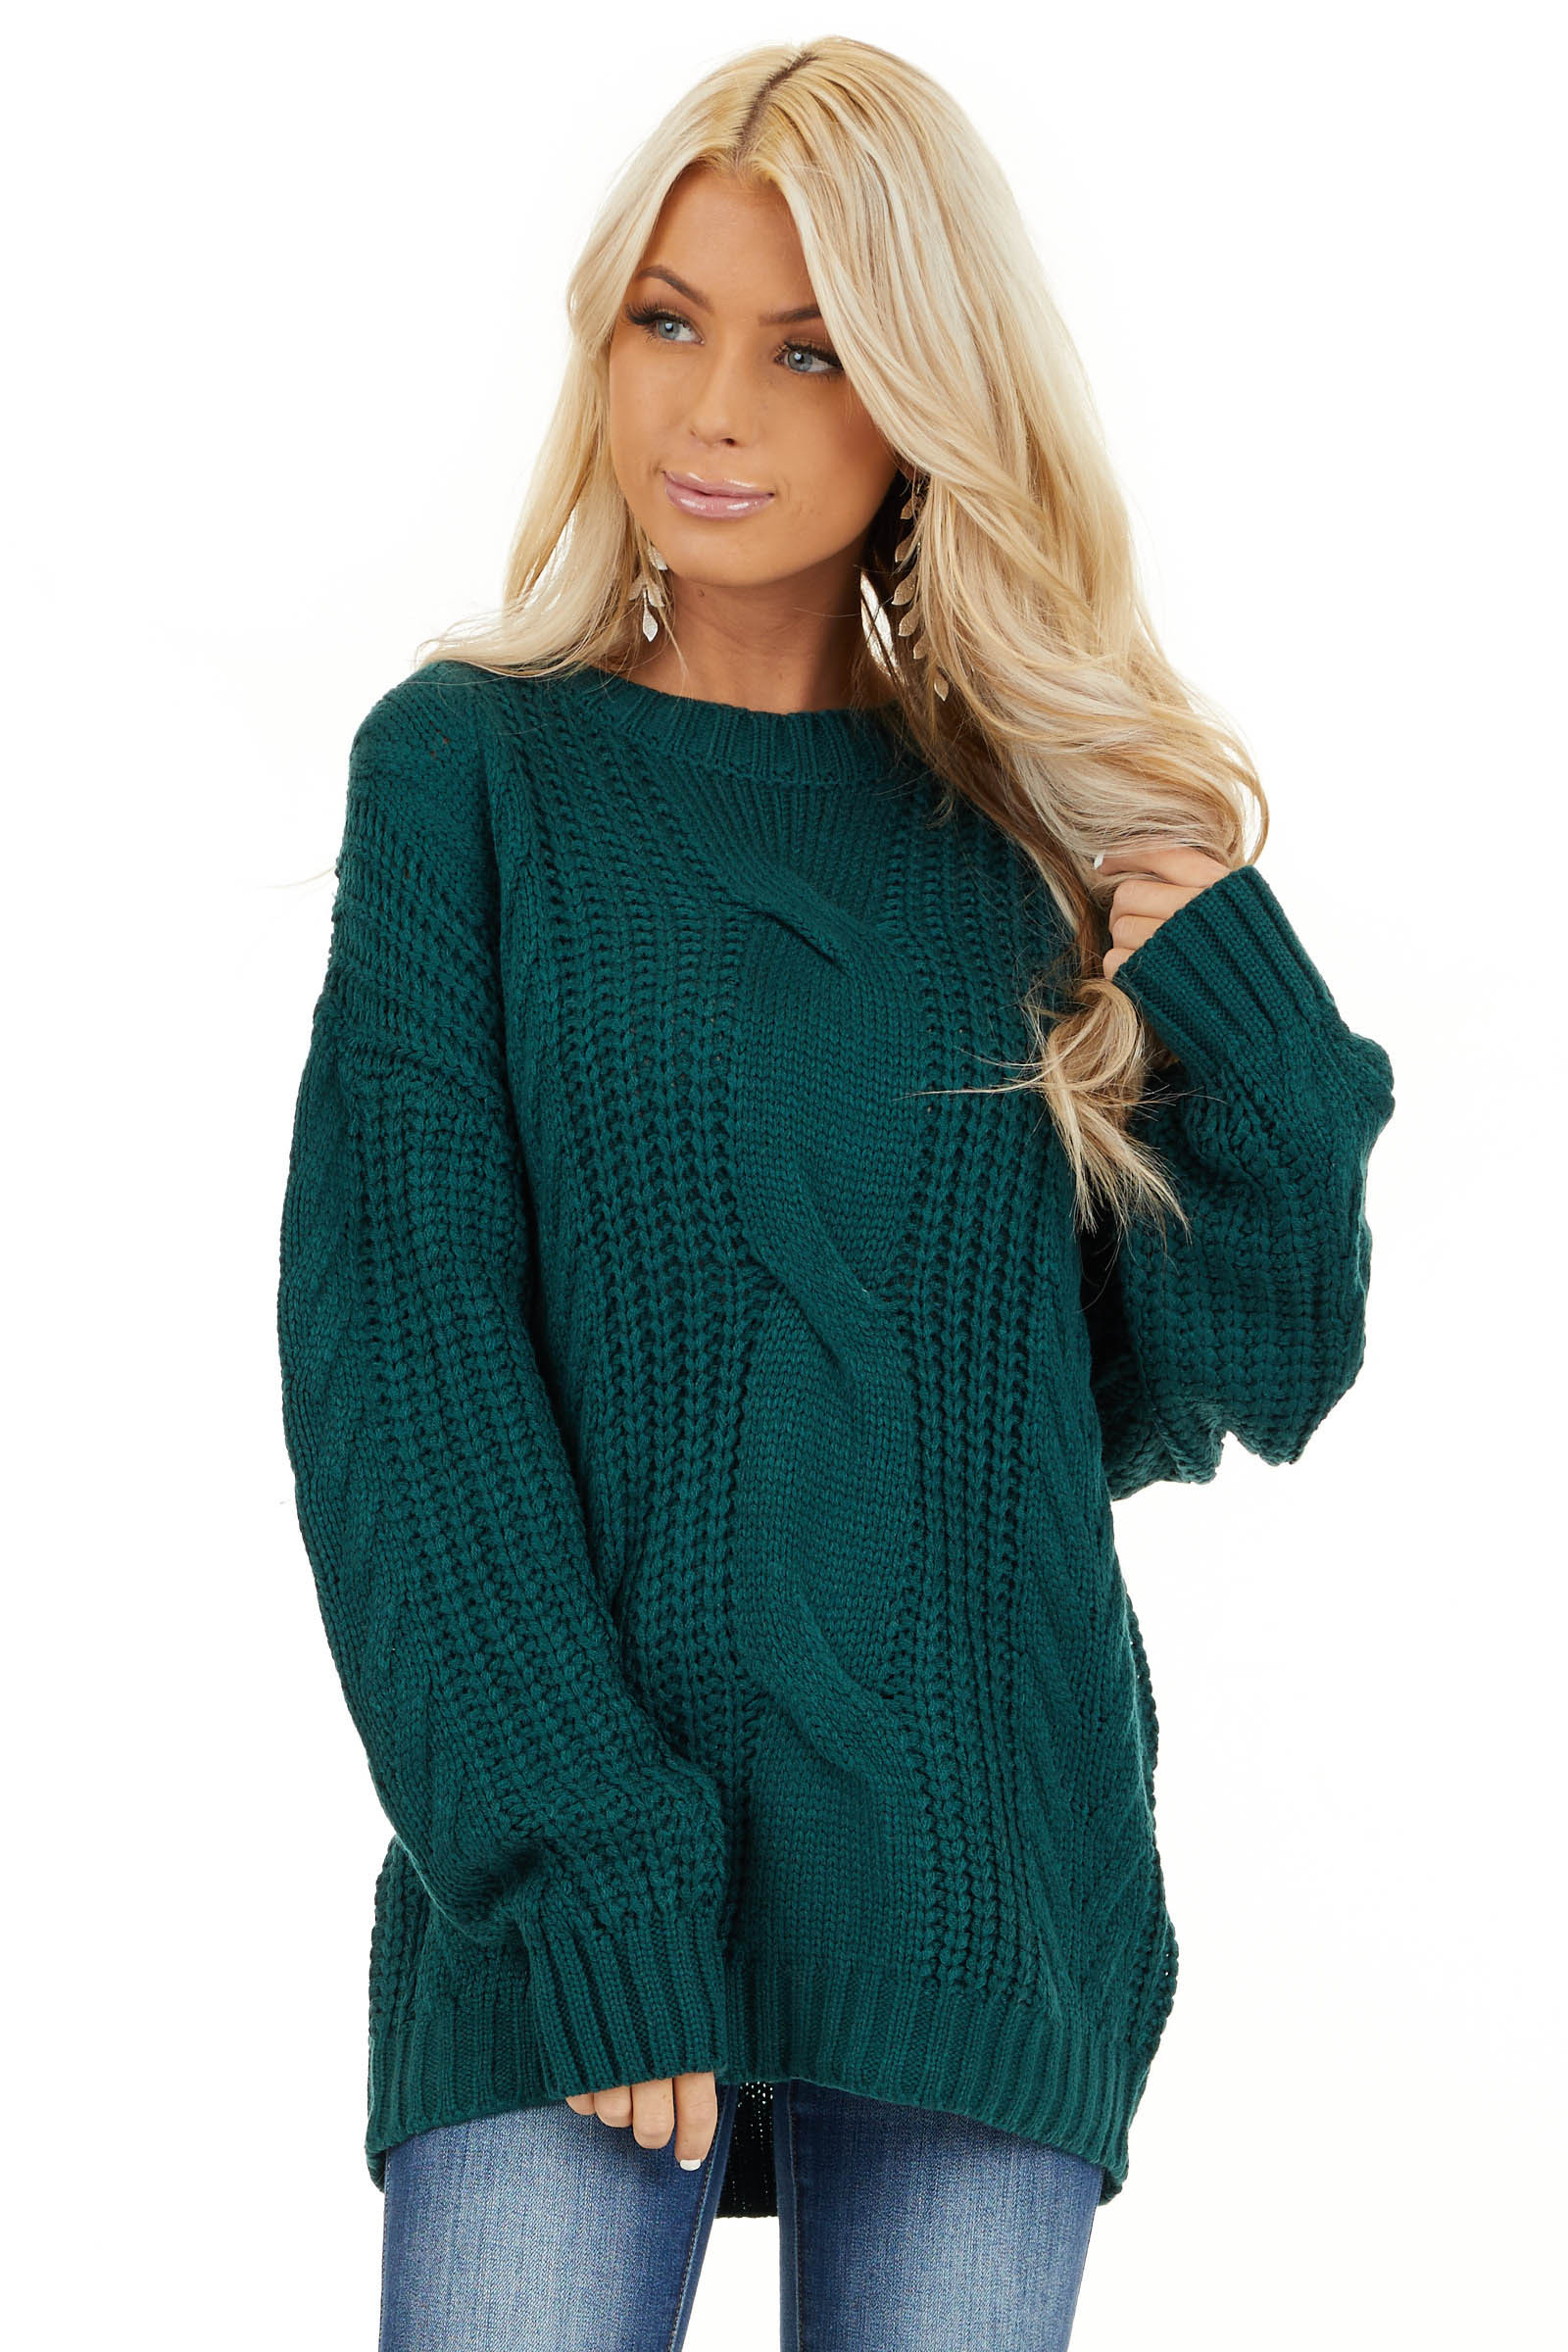 Pine Green Chunky Cable Knit Long Sleeve Sweater Lime